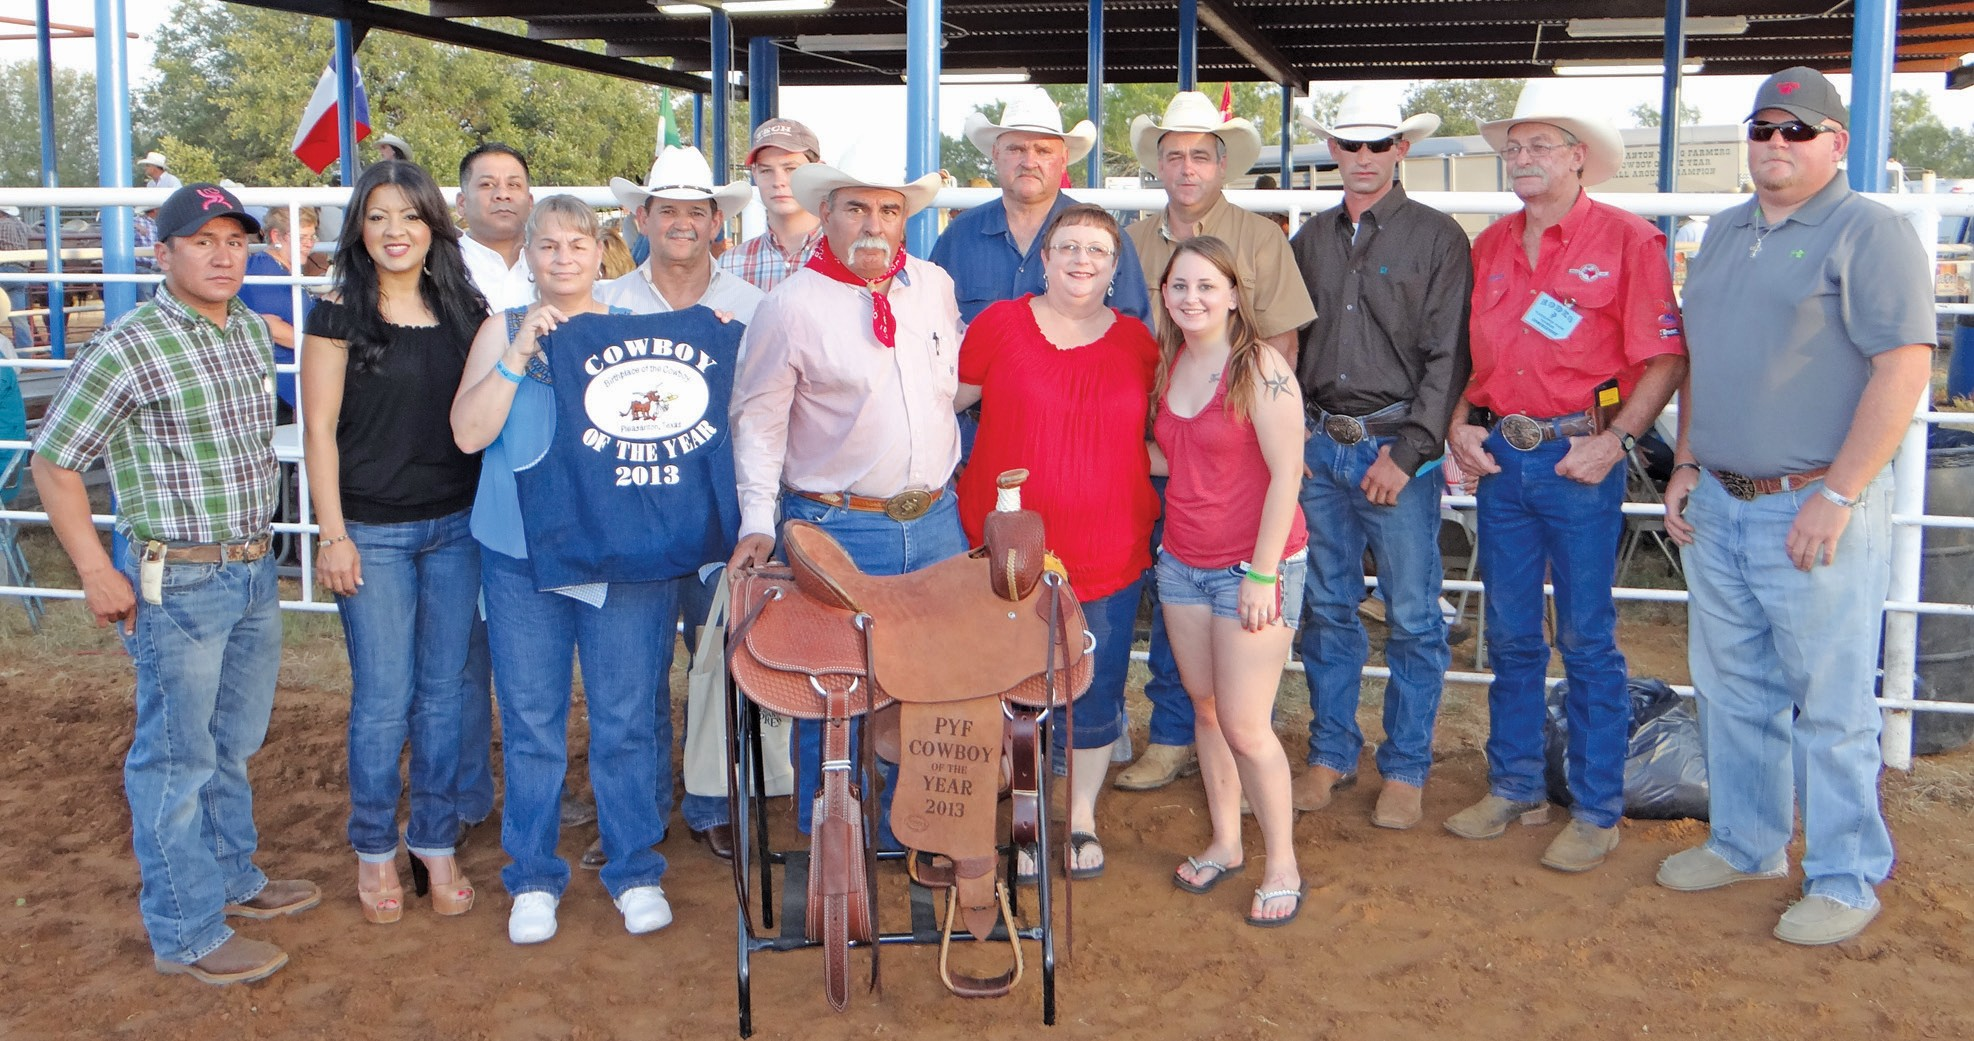 The 2013 Atascosa County Working Cowboy of the Year was awarded to Roy Alonzo (center with saddle) at the Pleasanton Young Farmers Cowboy of the Year Rodeo and Festival held this past Friday, August 16. He was presented with a hand tooled Ringlestein saddle by the PYF members and Gus Wheeler of Atascosa Livestock Exchange who once again donated the saddle. He also received a plaque and bandanna from the committee and the traditional vest from the Pleasanton Chamber of Commerce. Left to right are Chamber Directors Jorge Quiroga, Claudia Reyes, Jason Reyes, Kellie Vrana, Cowboy Selection chair Joel McDaniel, Wheeler, Alonzo, Jo Ann Alonzo and their daughter Courtney and PYF members Darryl Ashley, Randy Rice, Dustin Neal, Roger Rowinsky and chamber director Wade McBee.